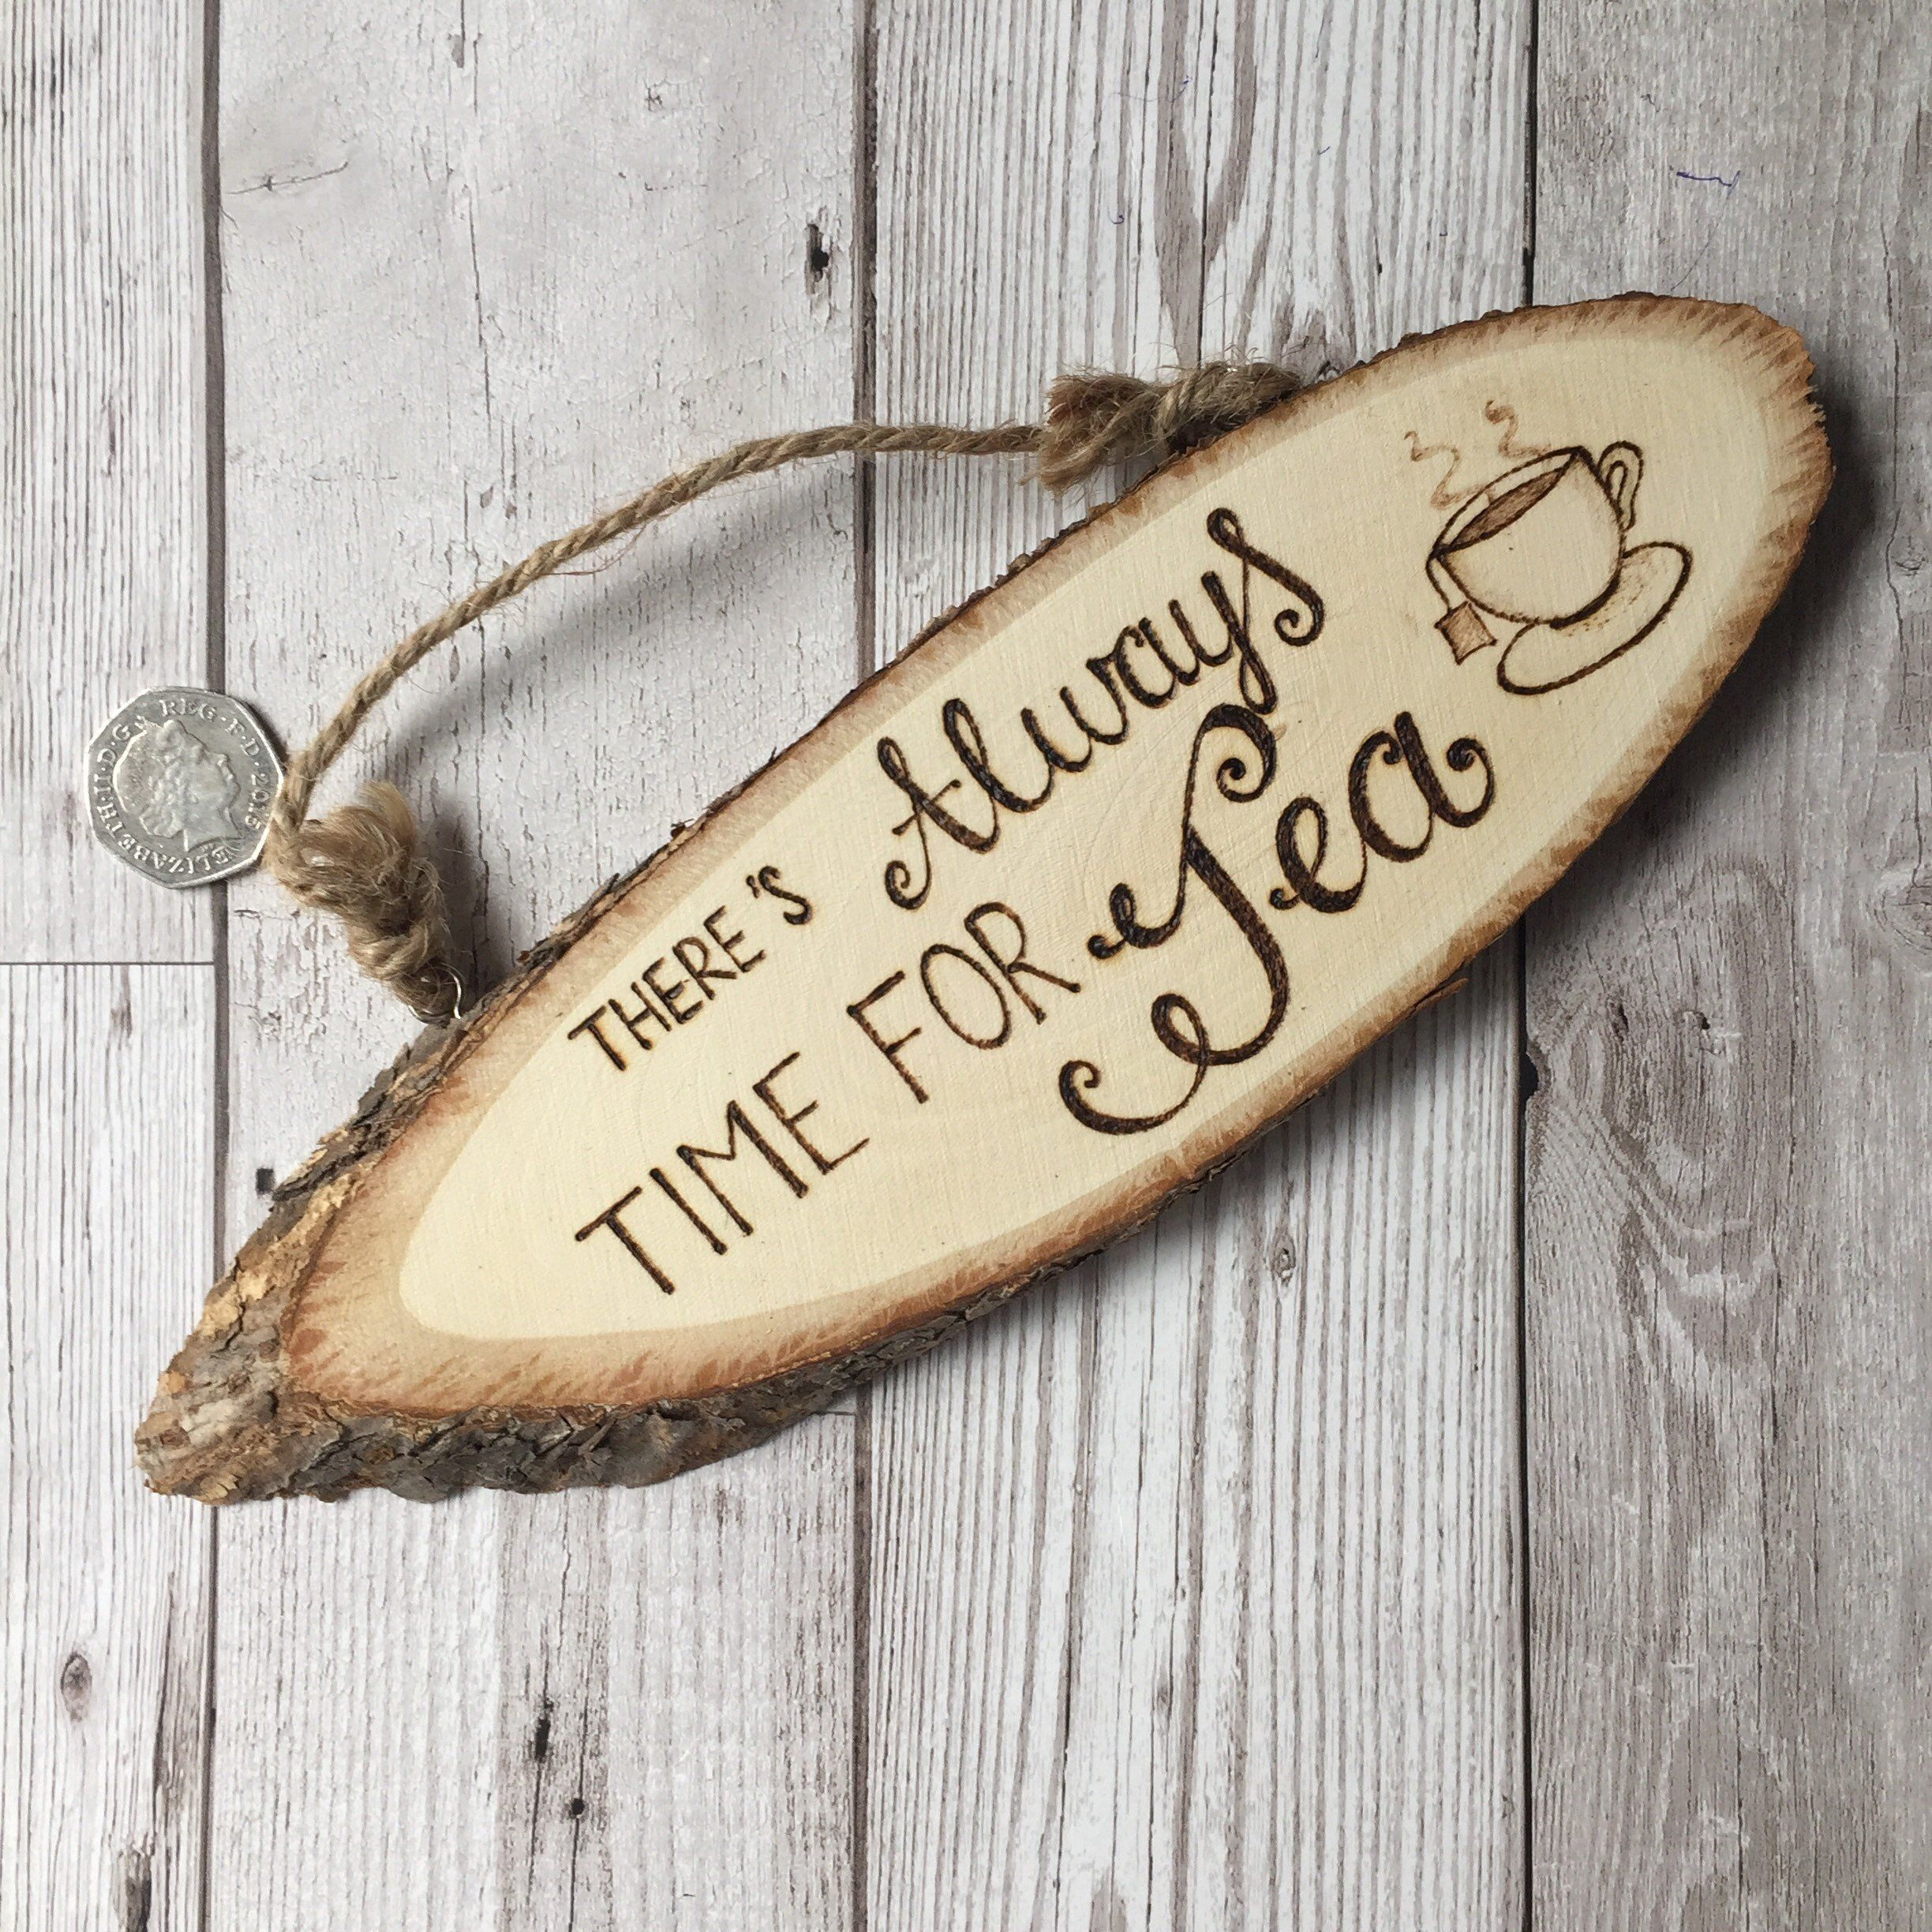 Hanging Wooden Log Slice There S Always Time For Tea Pyrography Woodburning Quote Sign Rustic Decor By Shinycra Wood Crafts Diy Pyrography Wood Burn Designs